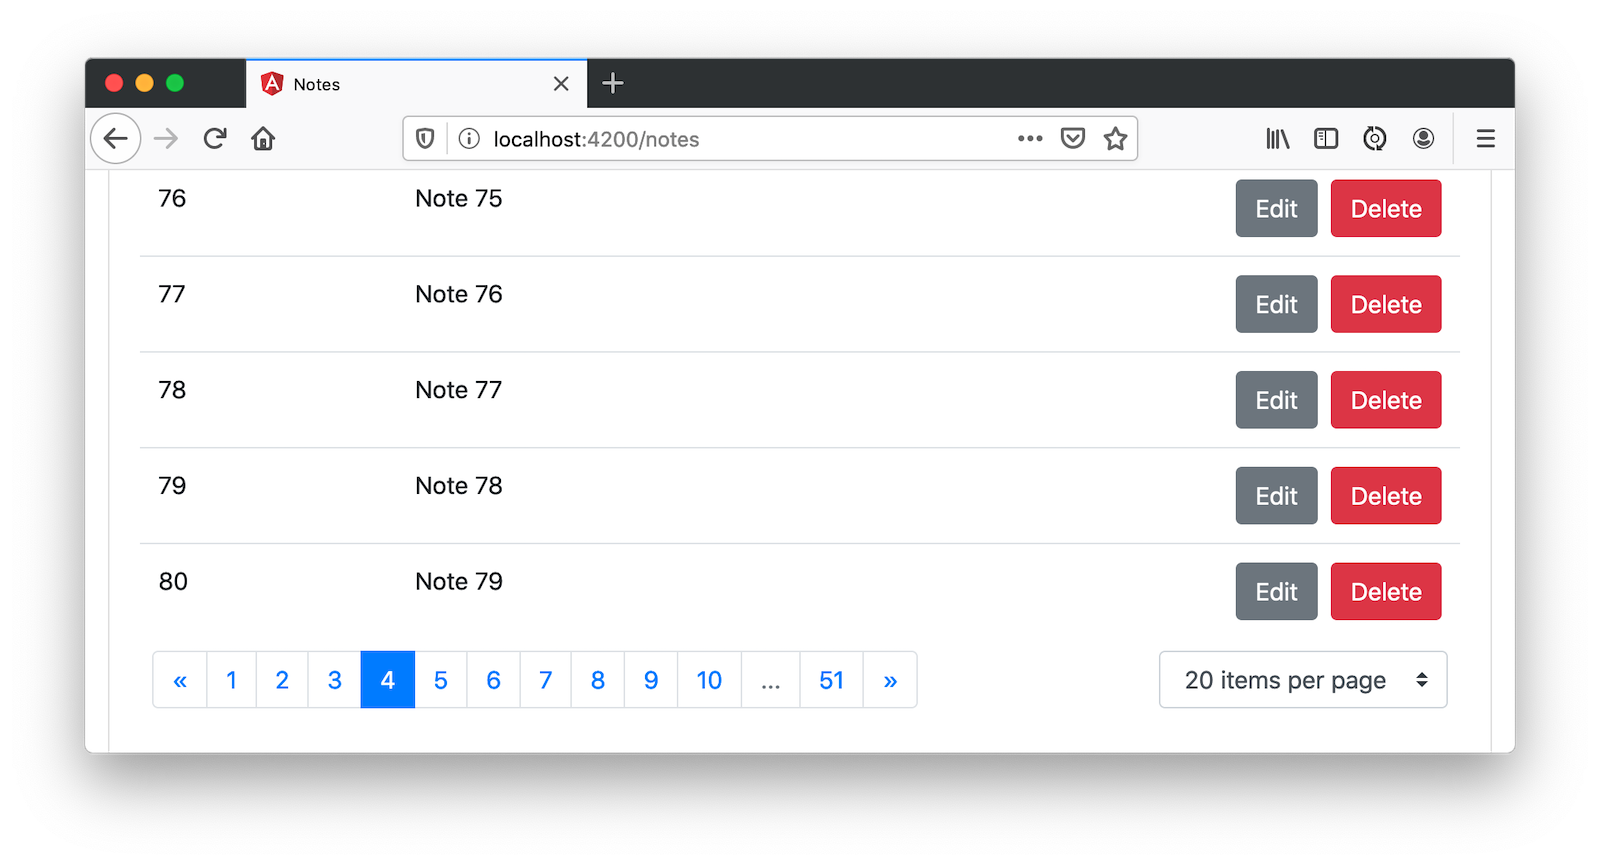 Adding pagination